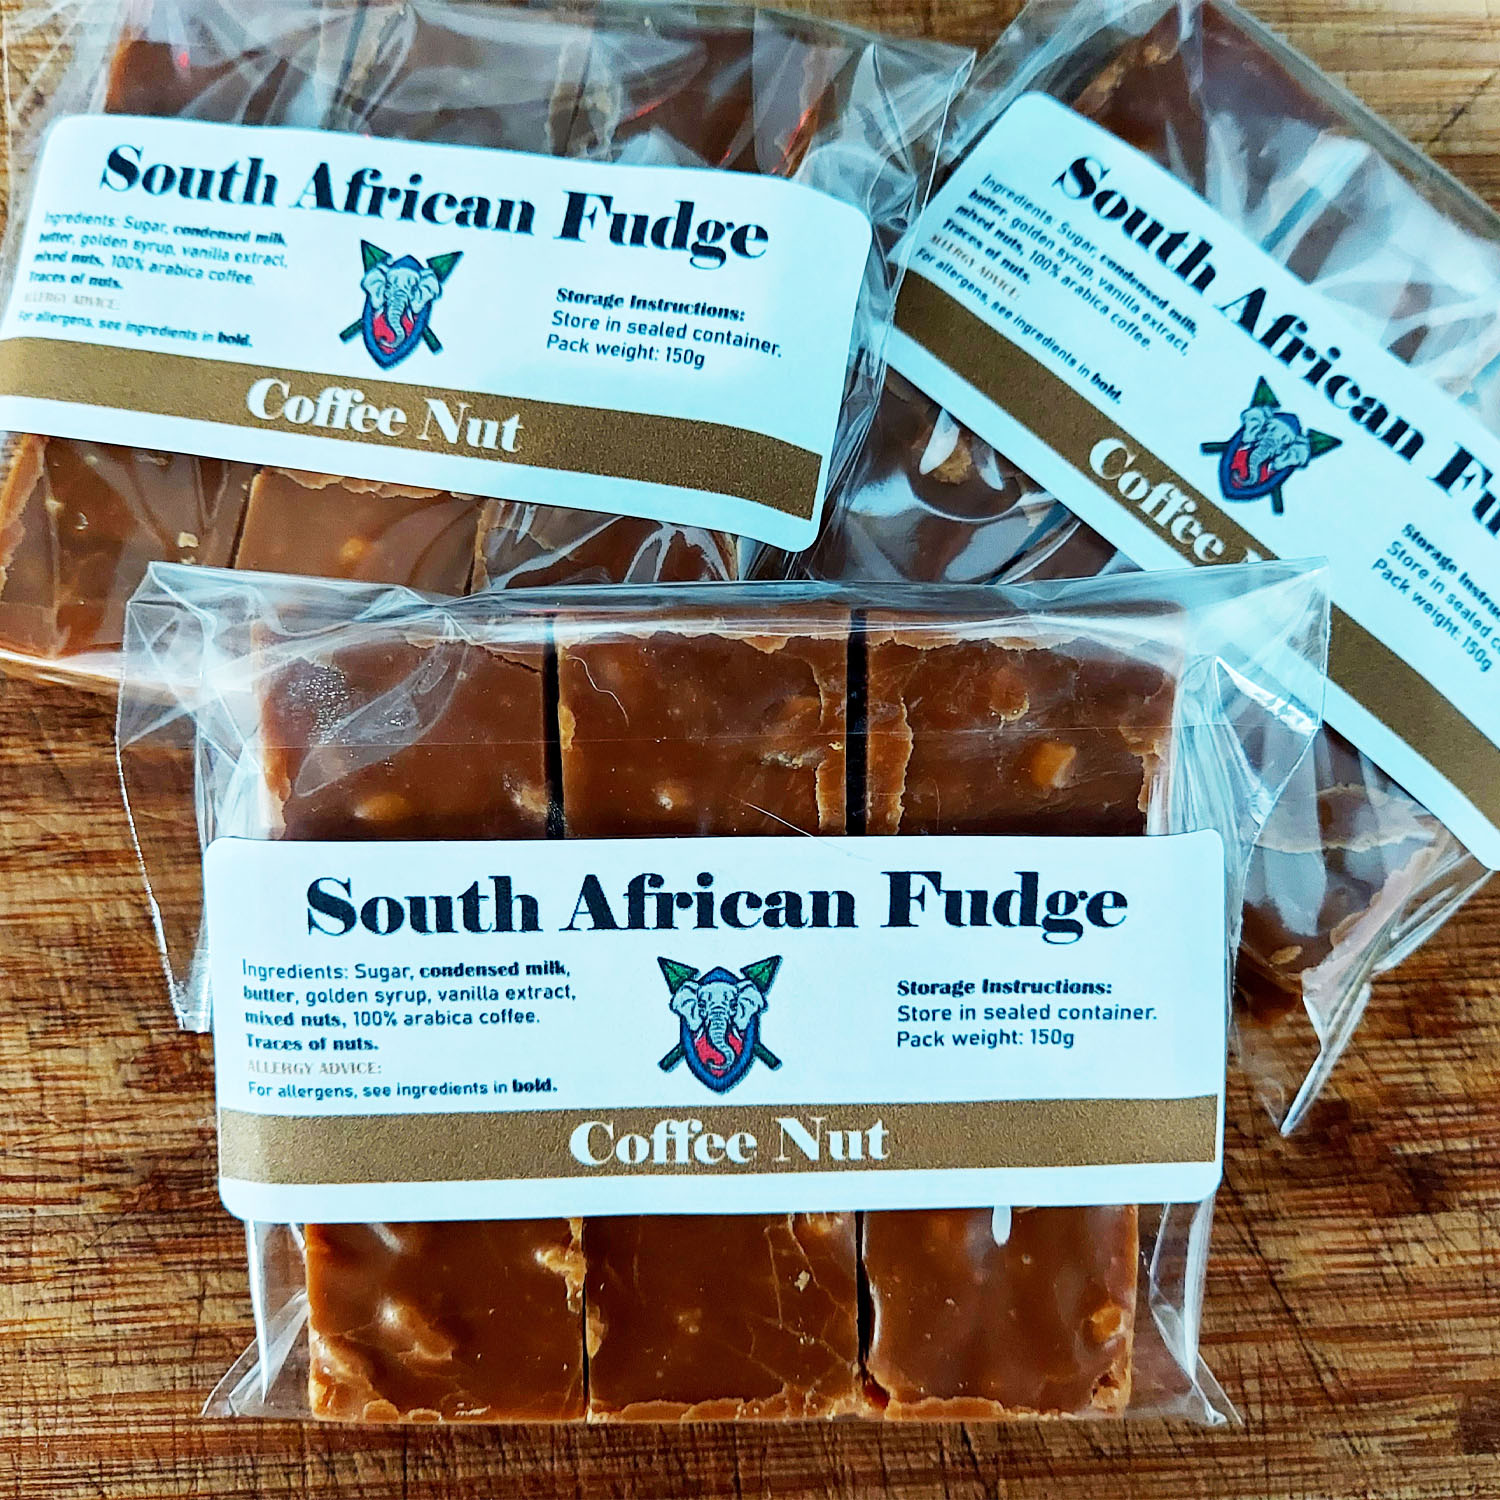 South African Fudge (Coffee Nut)